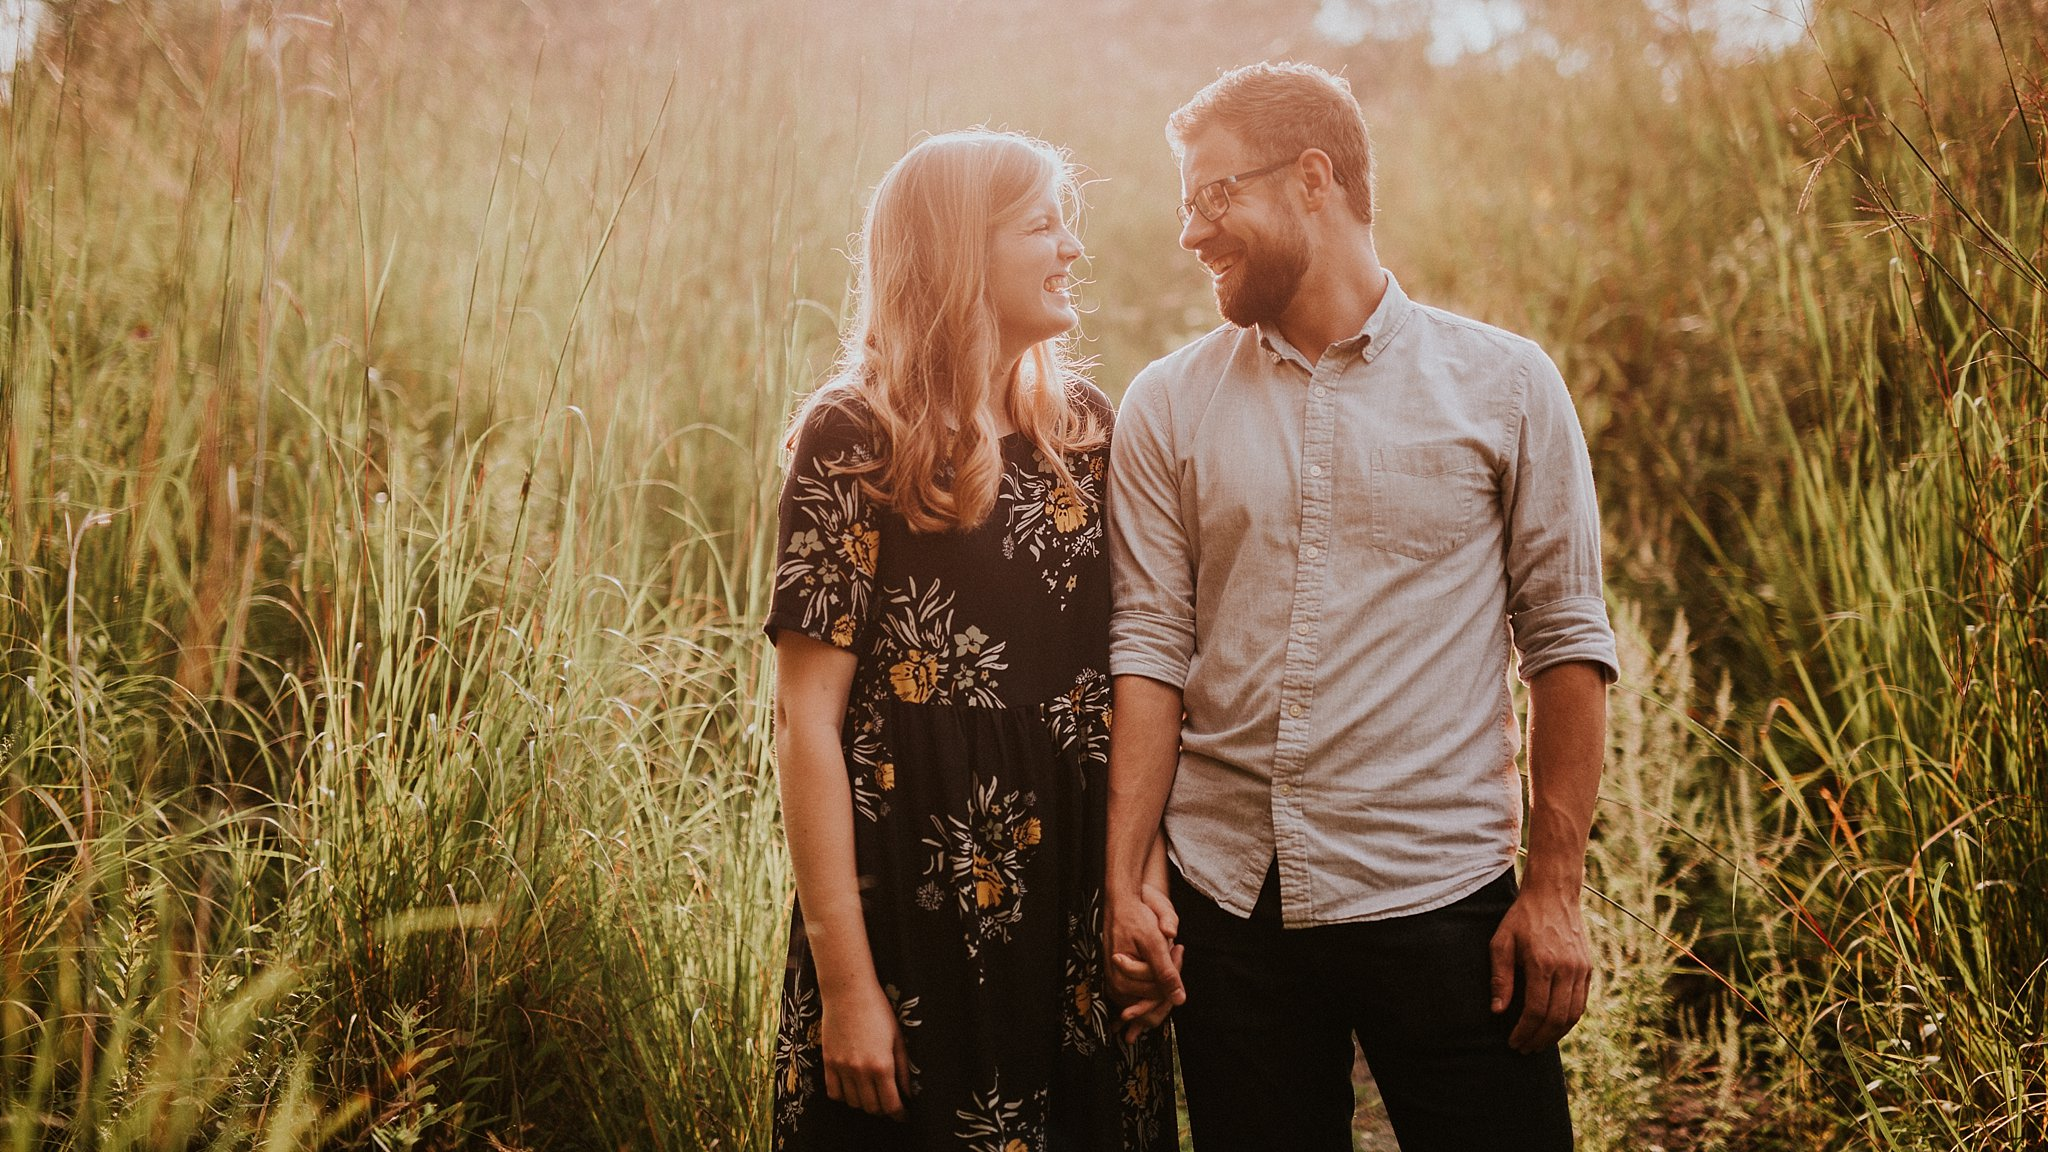 peter-katelyn_chicago-engagement-session_west-dundee-raceway-woods_0006.jpg